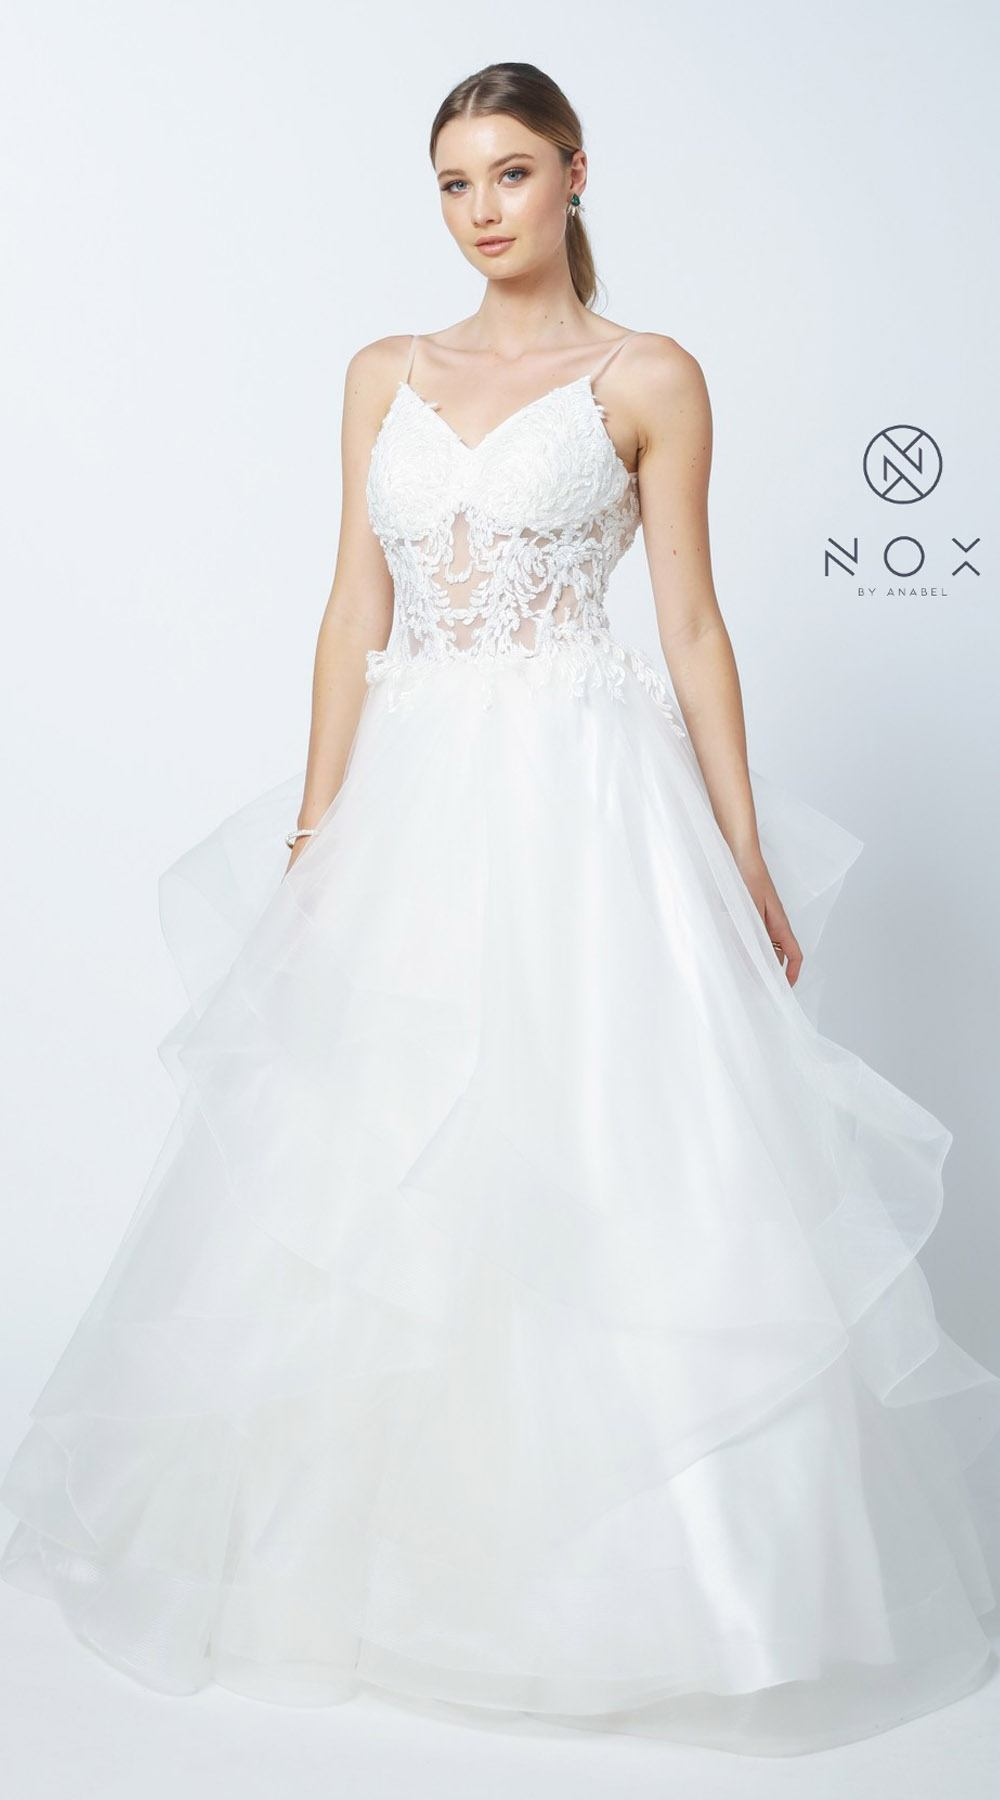 Nox Anabel W904 White Tiered Plus Size Wedding Gown with Spaghetti ...